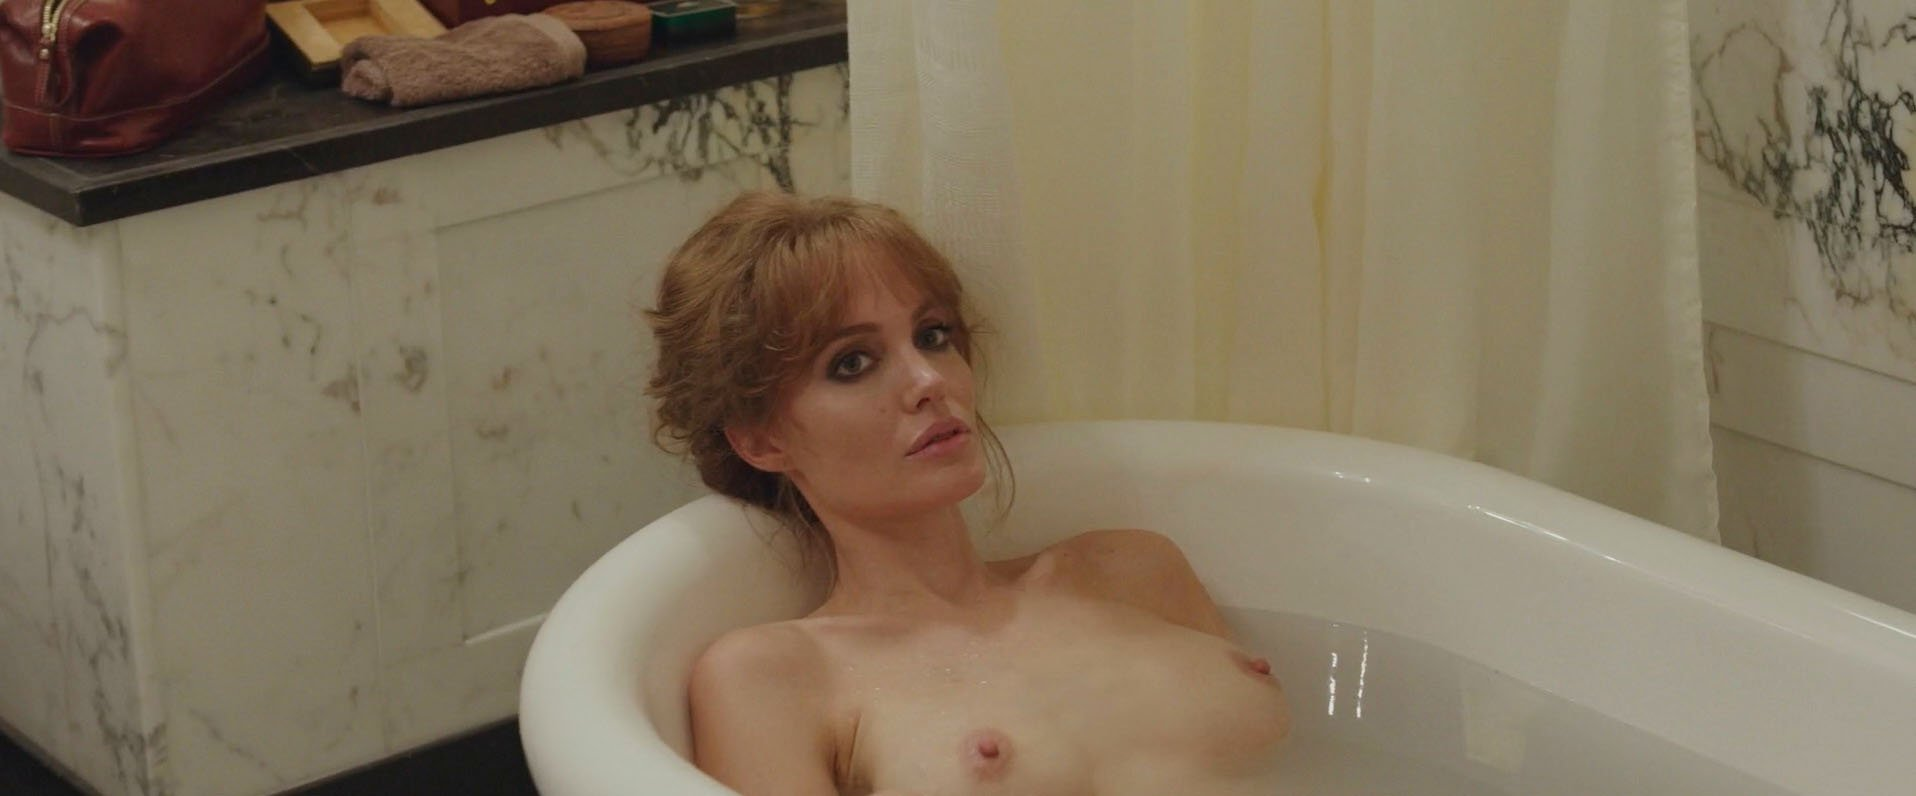 Angelina Jolie Is Nude 75